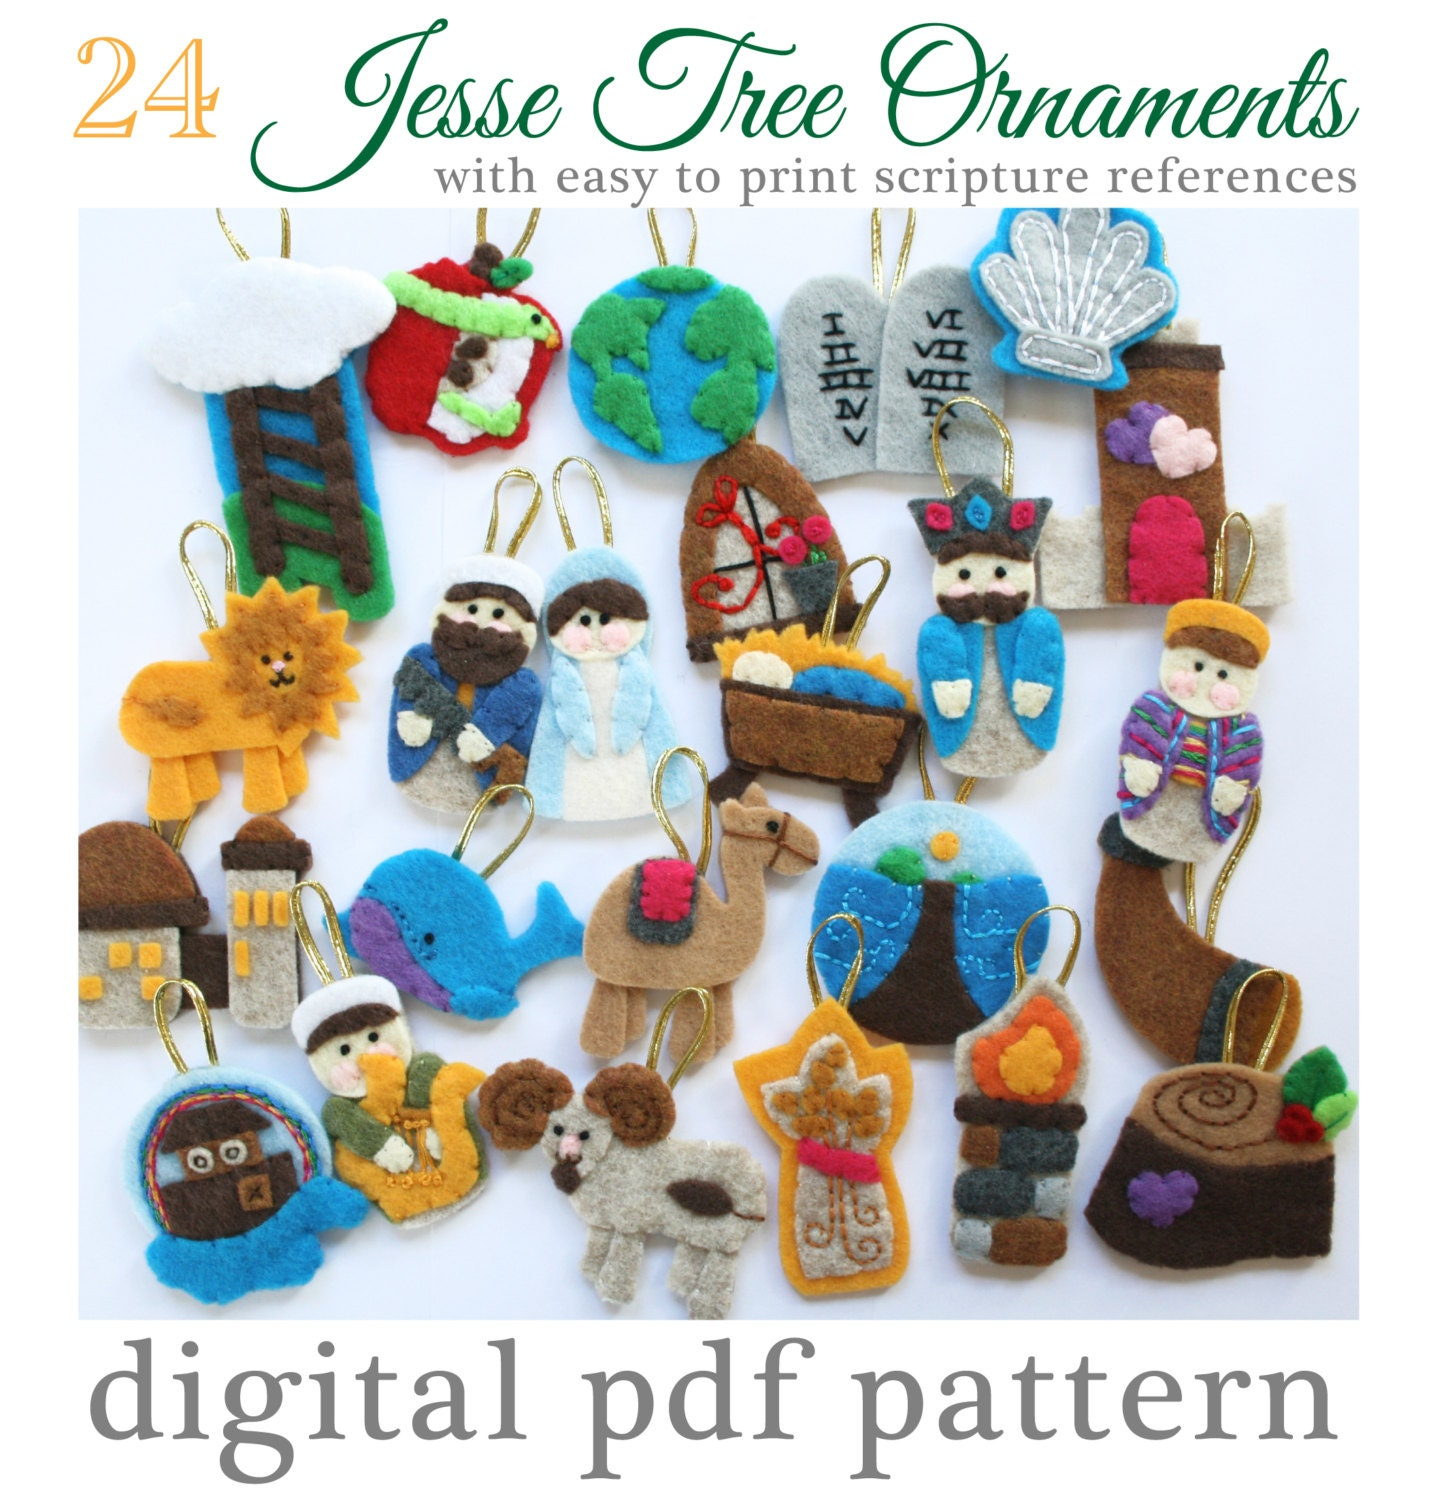 24 jesse tree advent ornaments pattern 24 ornaments with